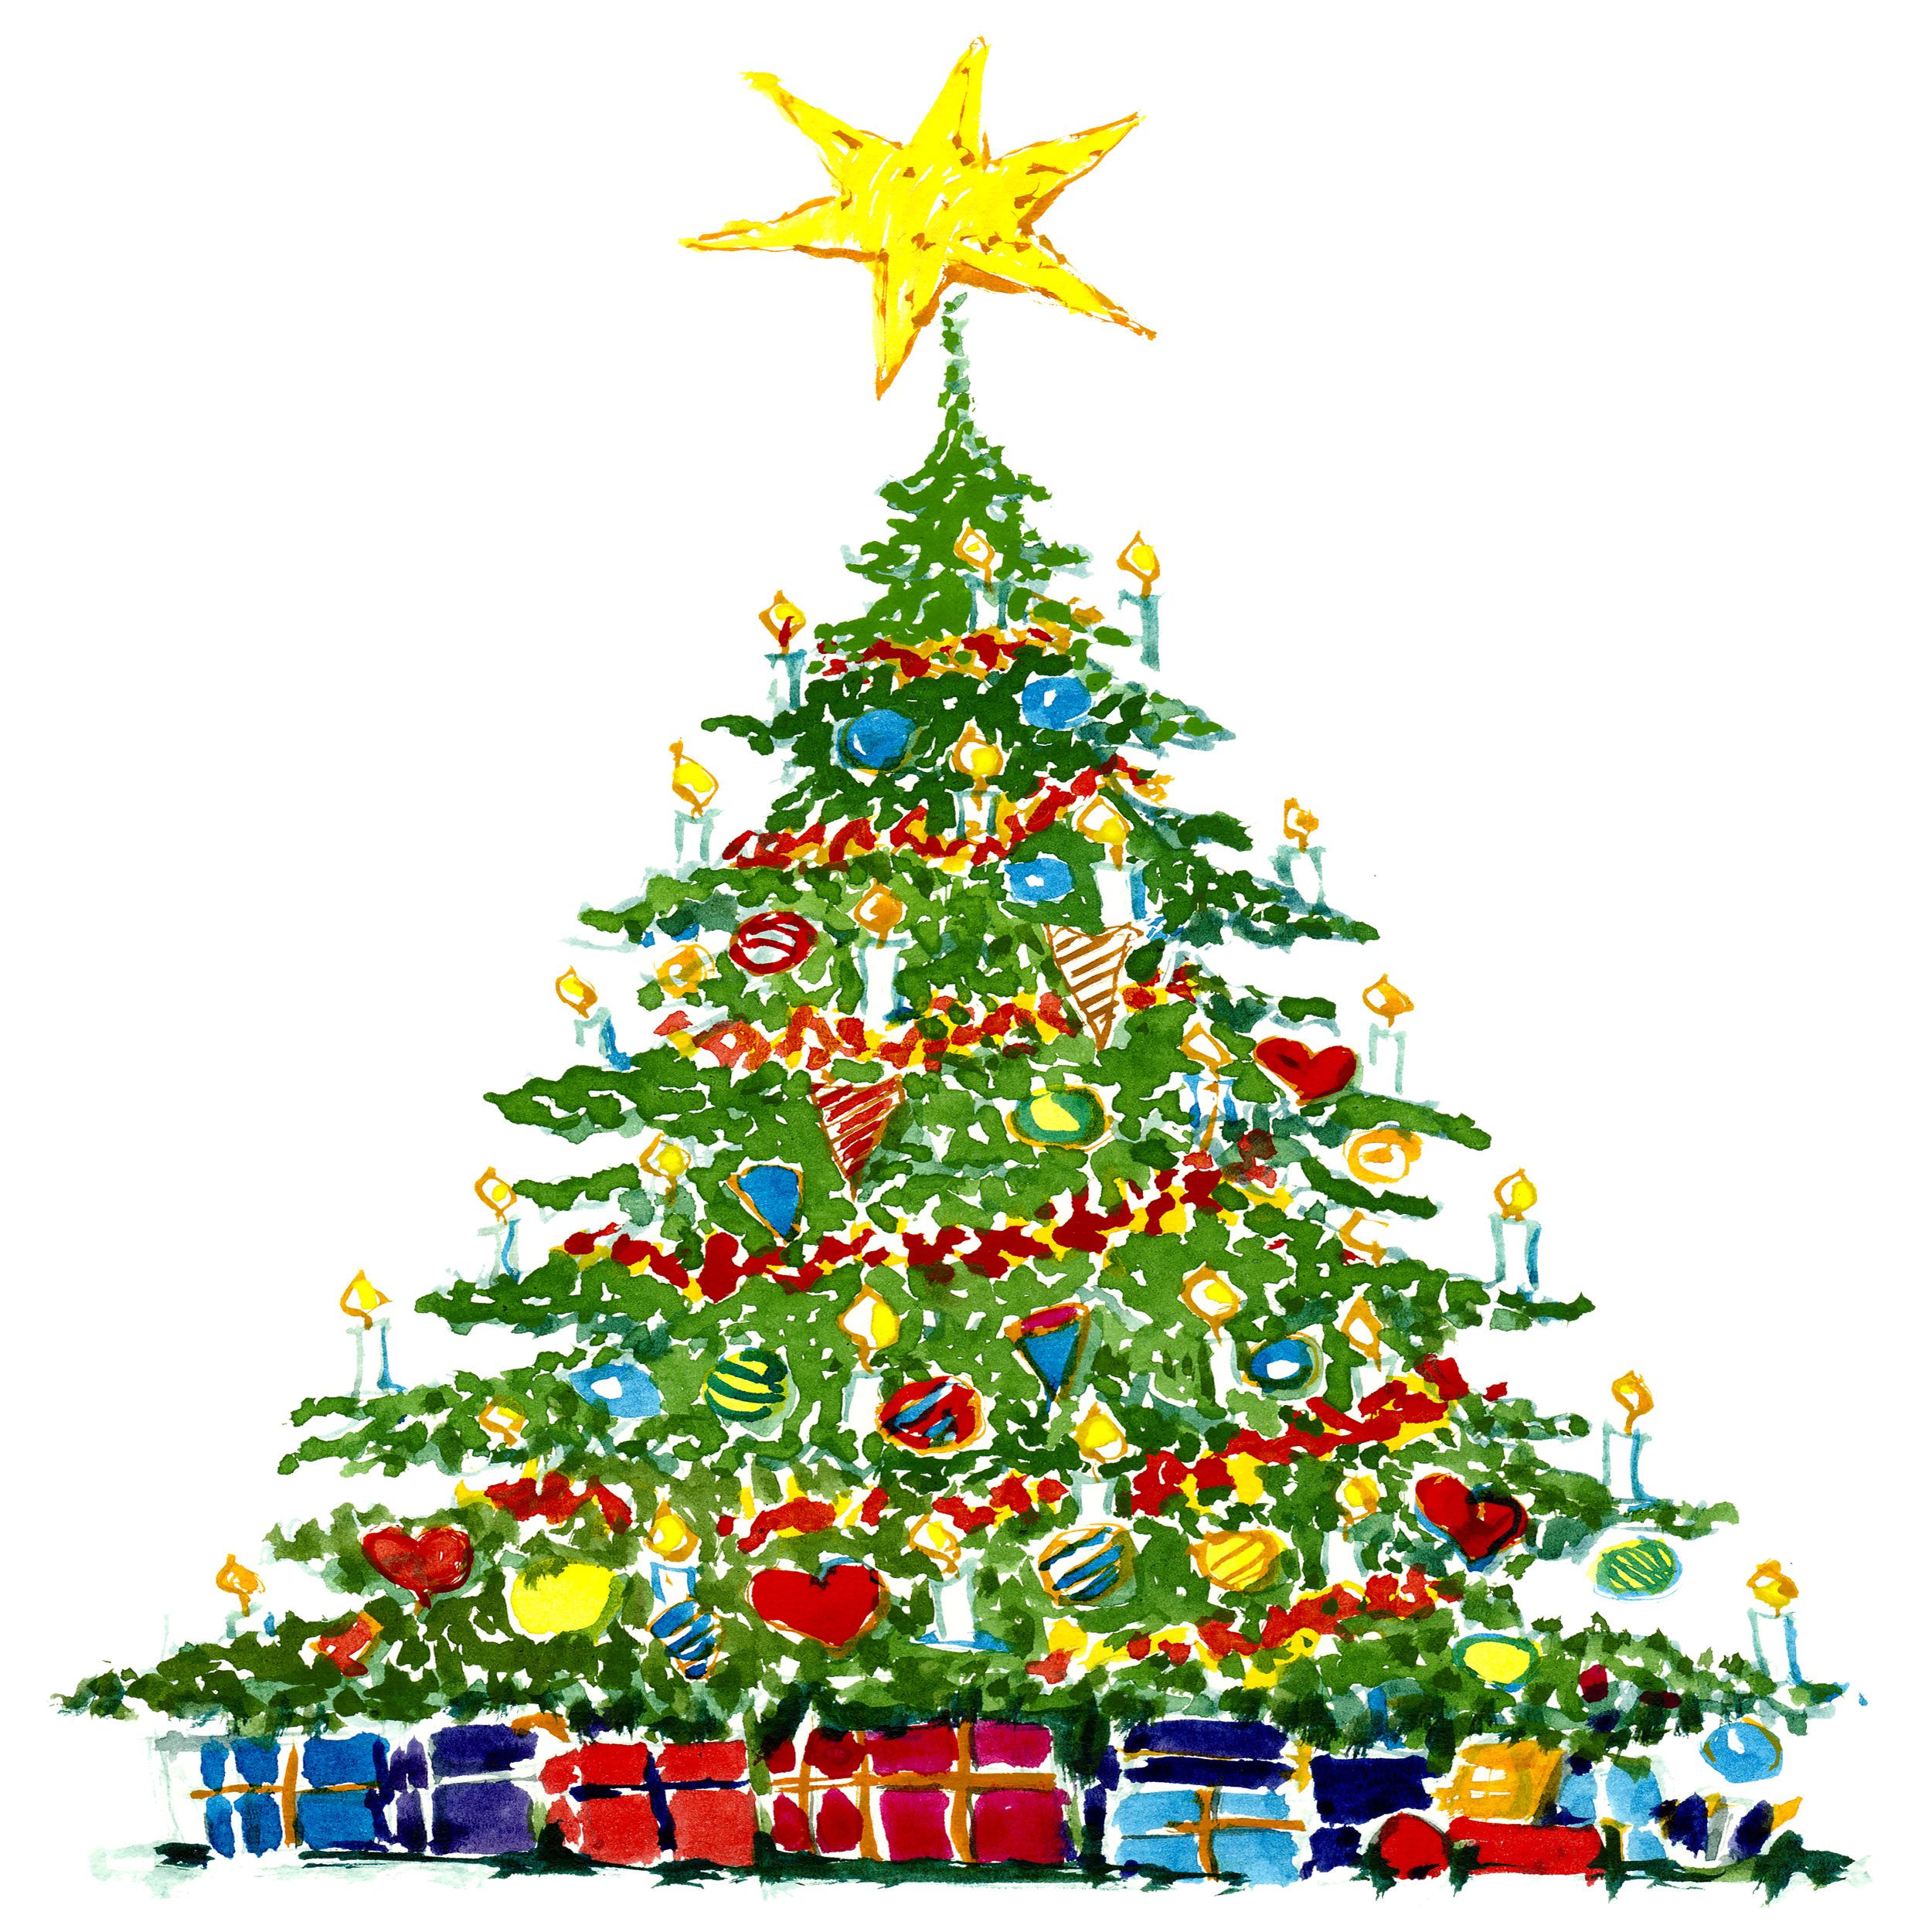 Christmas Tree Drawing Image at GetDrawings.com | Free for personal ...